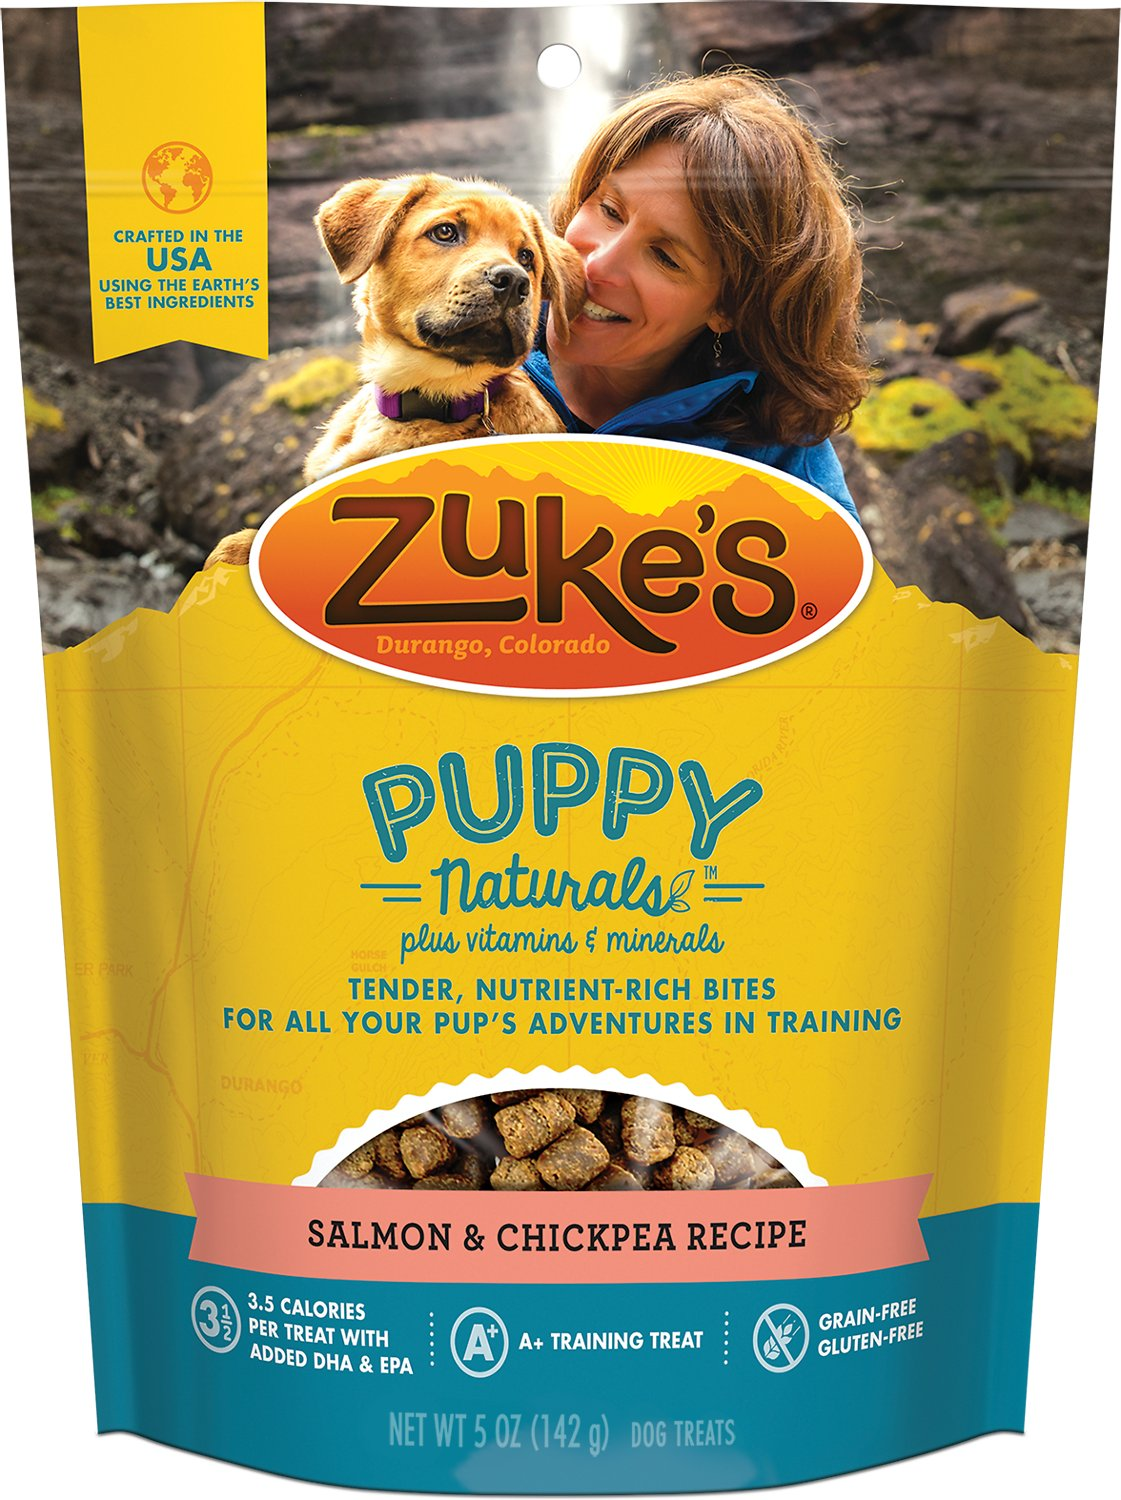 Zuke's Puppy Naturals Salmon & Chickpea Recipe Dog Treats, 5-oz bag